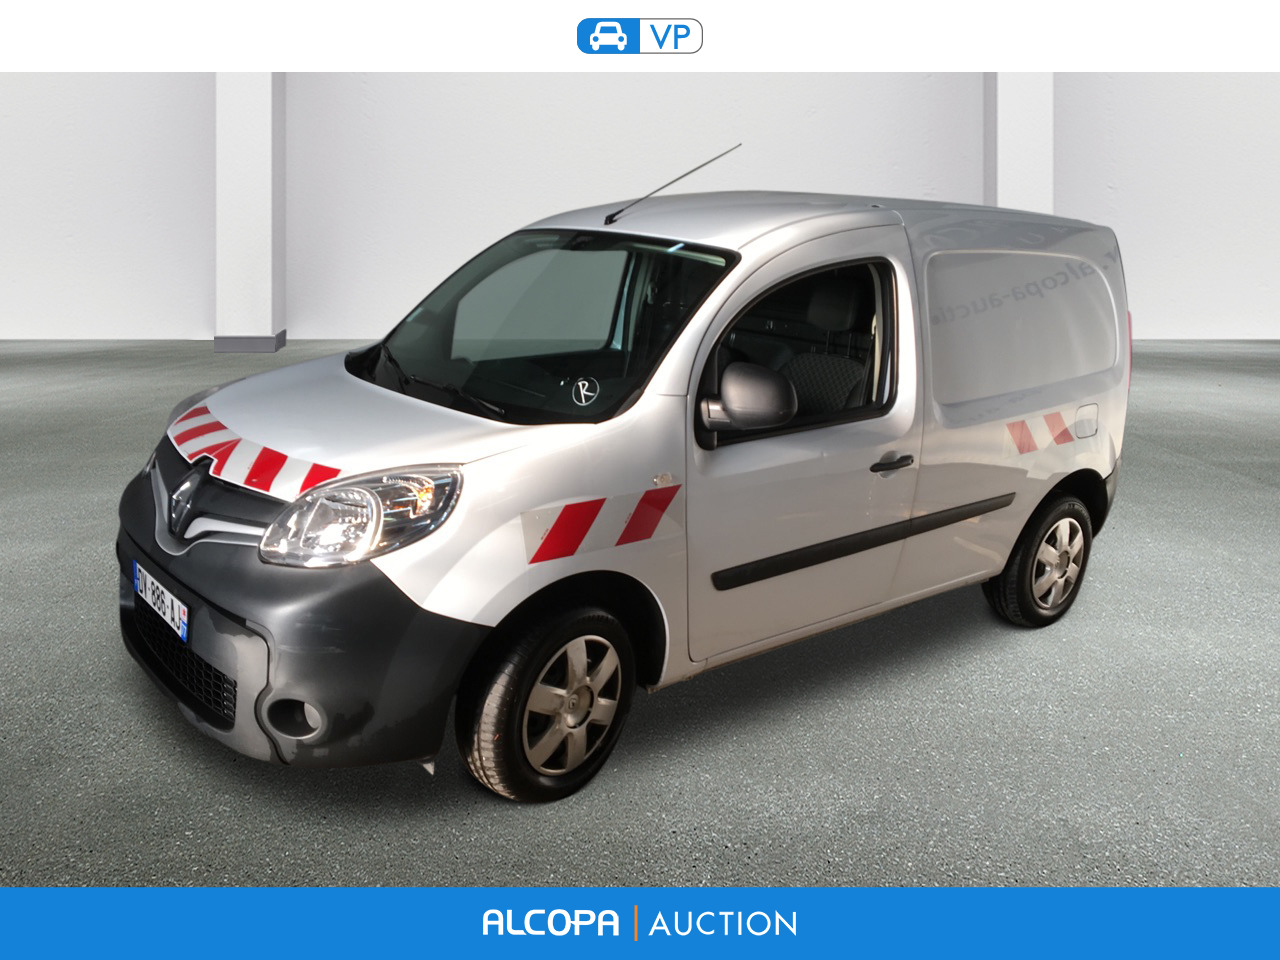 renault kangoo kangoo express 1 5 dci 75 energy grand confort alcopa auction. Black Bedroom Furniture Sets. Home Design Ideas